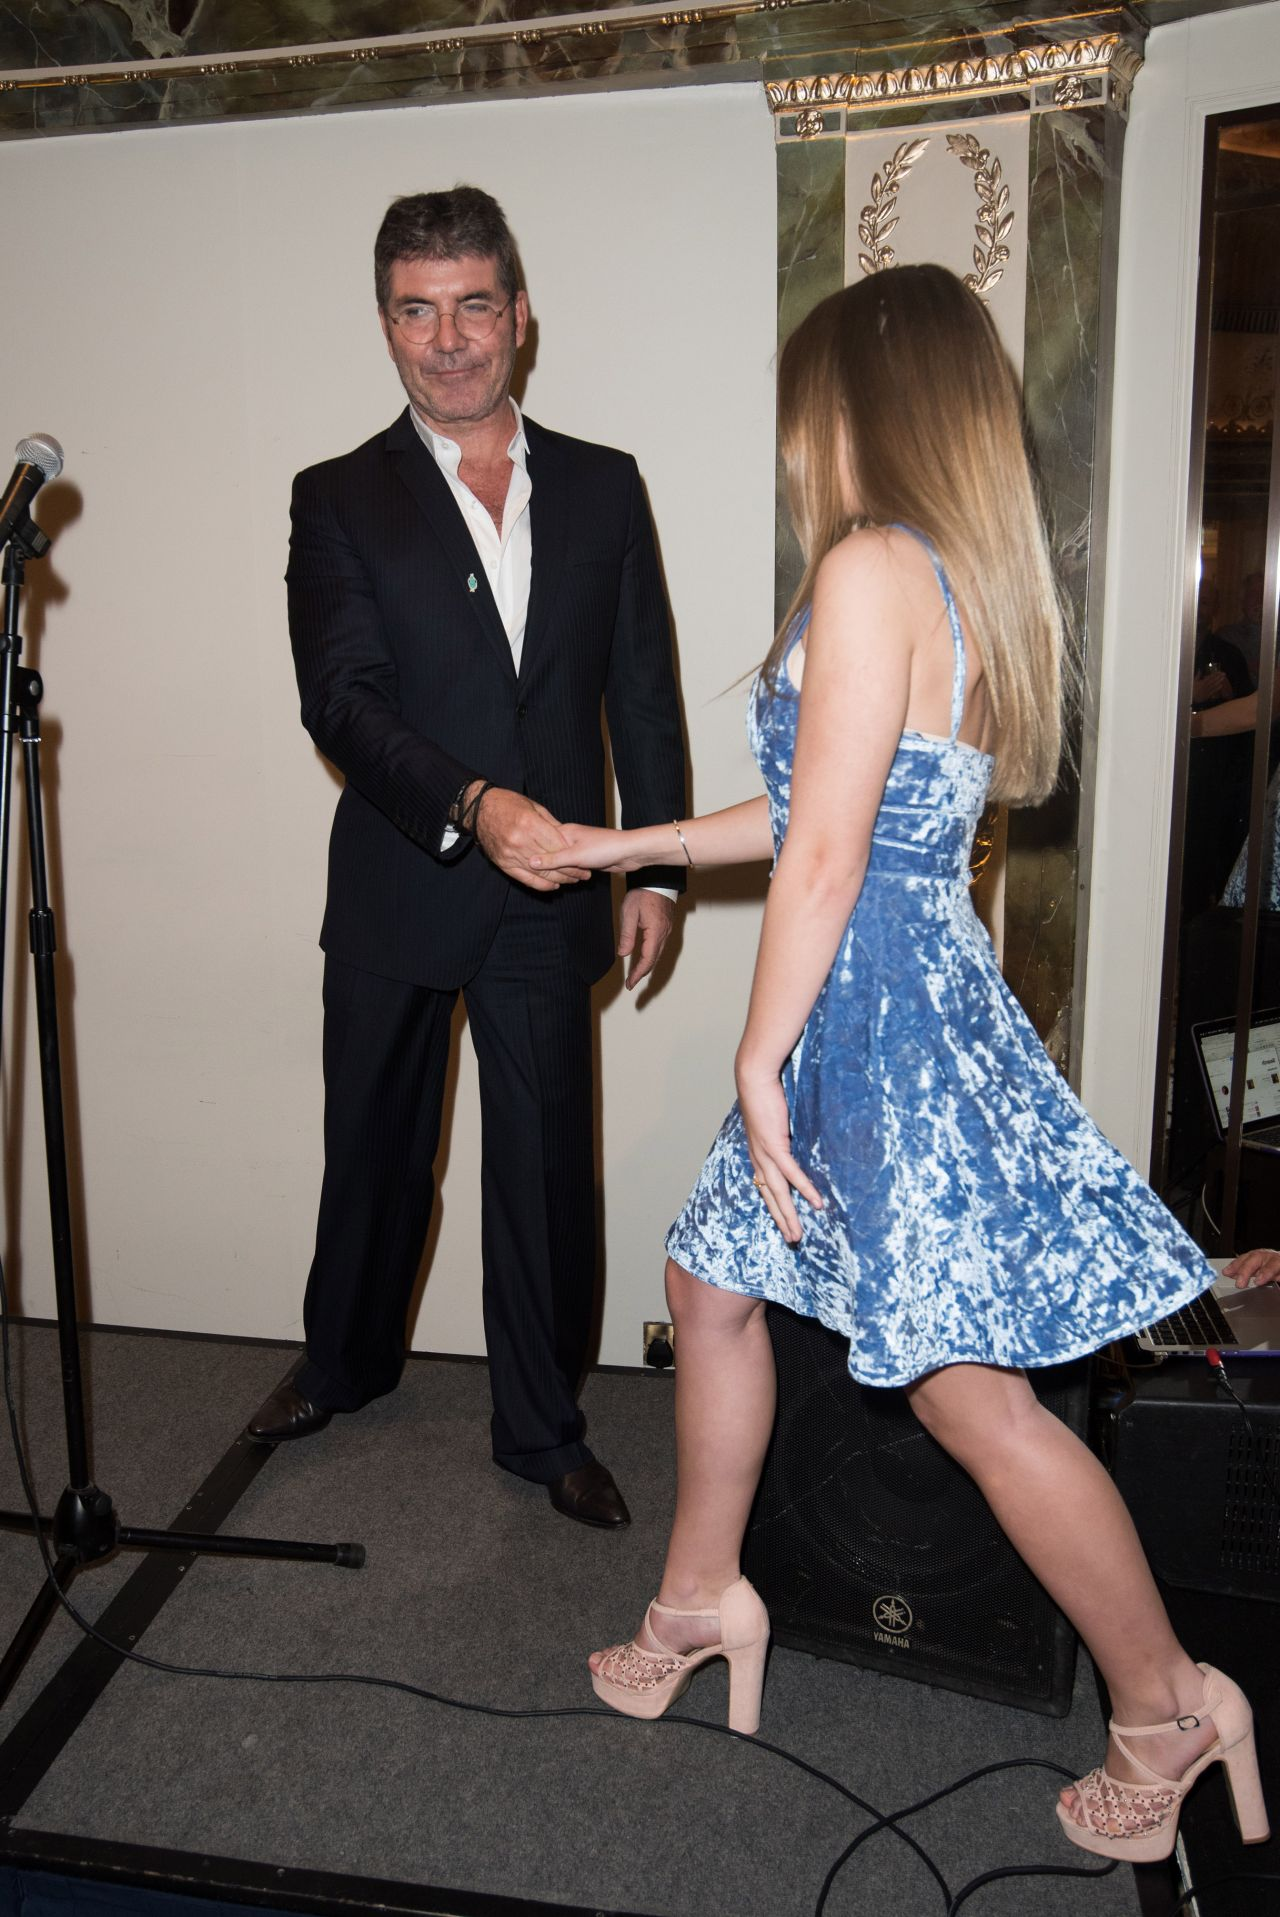 connie-talbot-shooting-star-chase-children-s-hospice-at-the-dorchester-london-05-26-2017-5.jpg